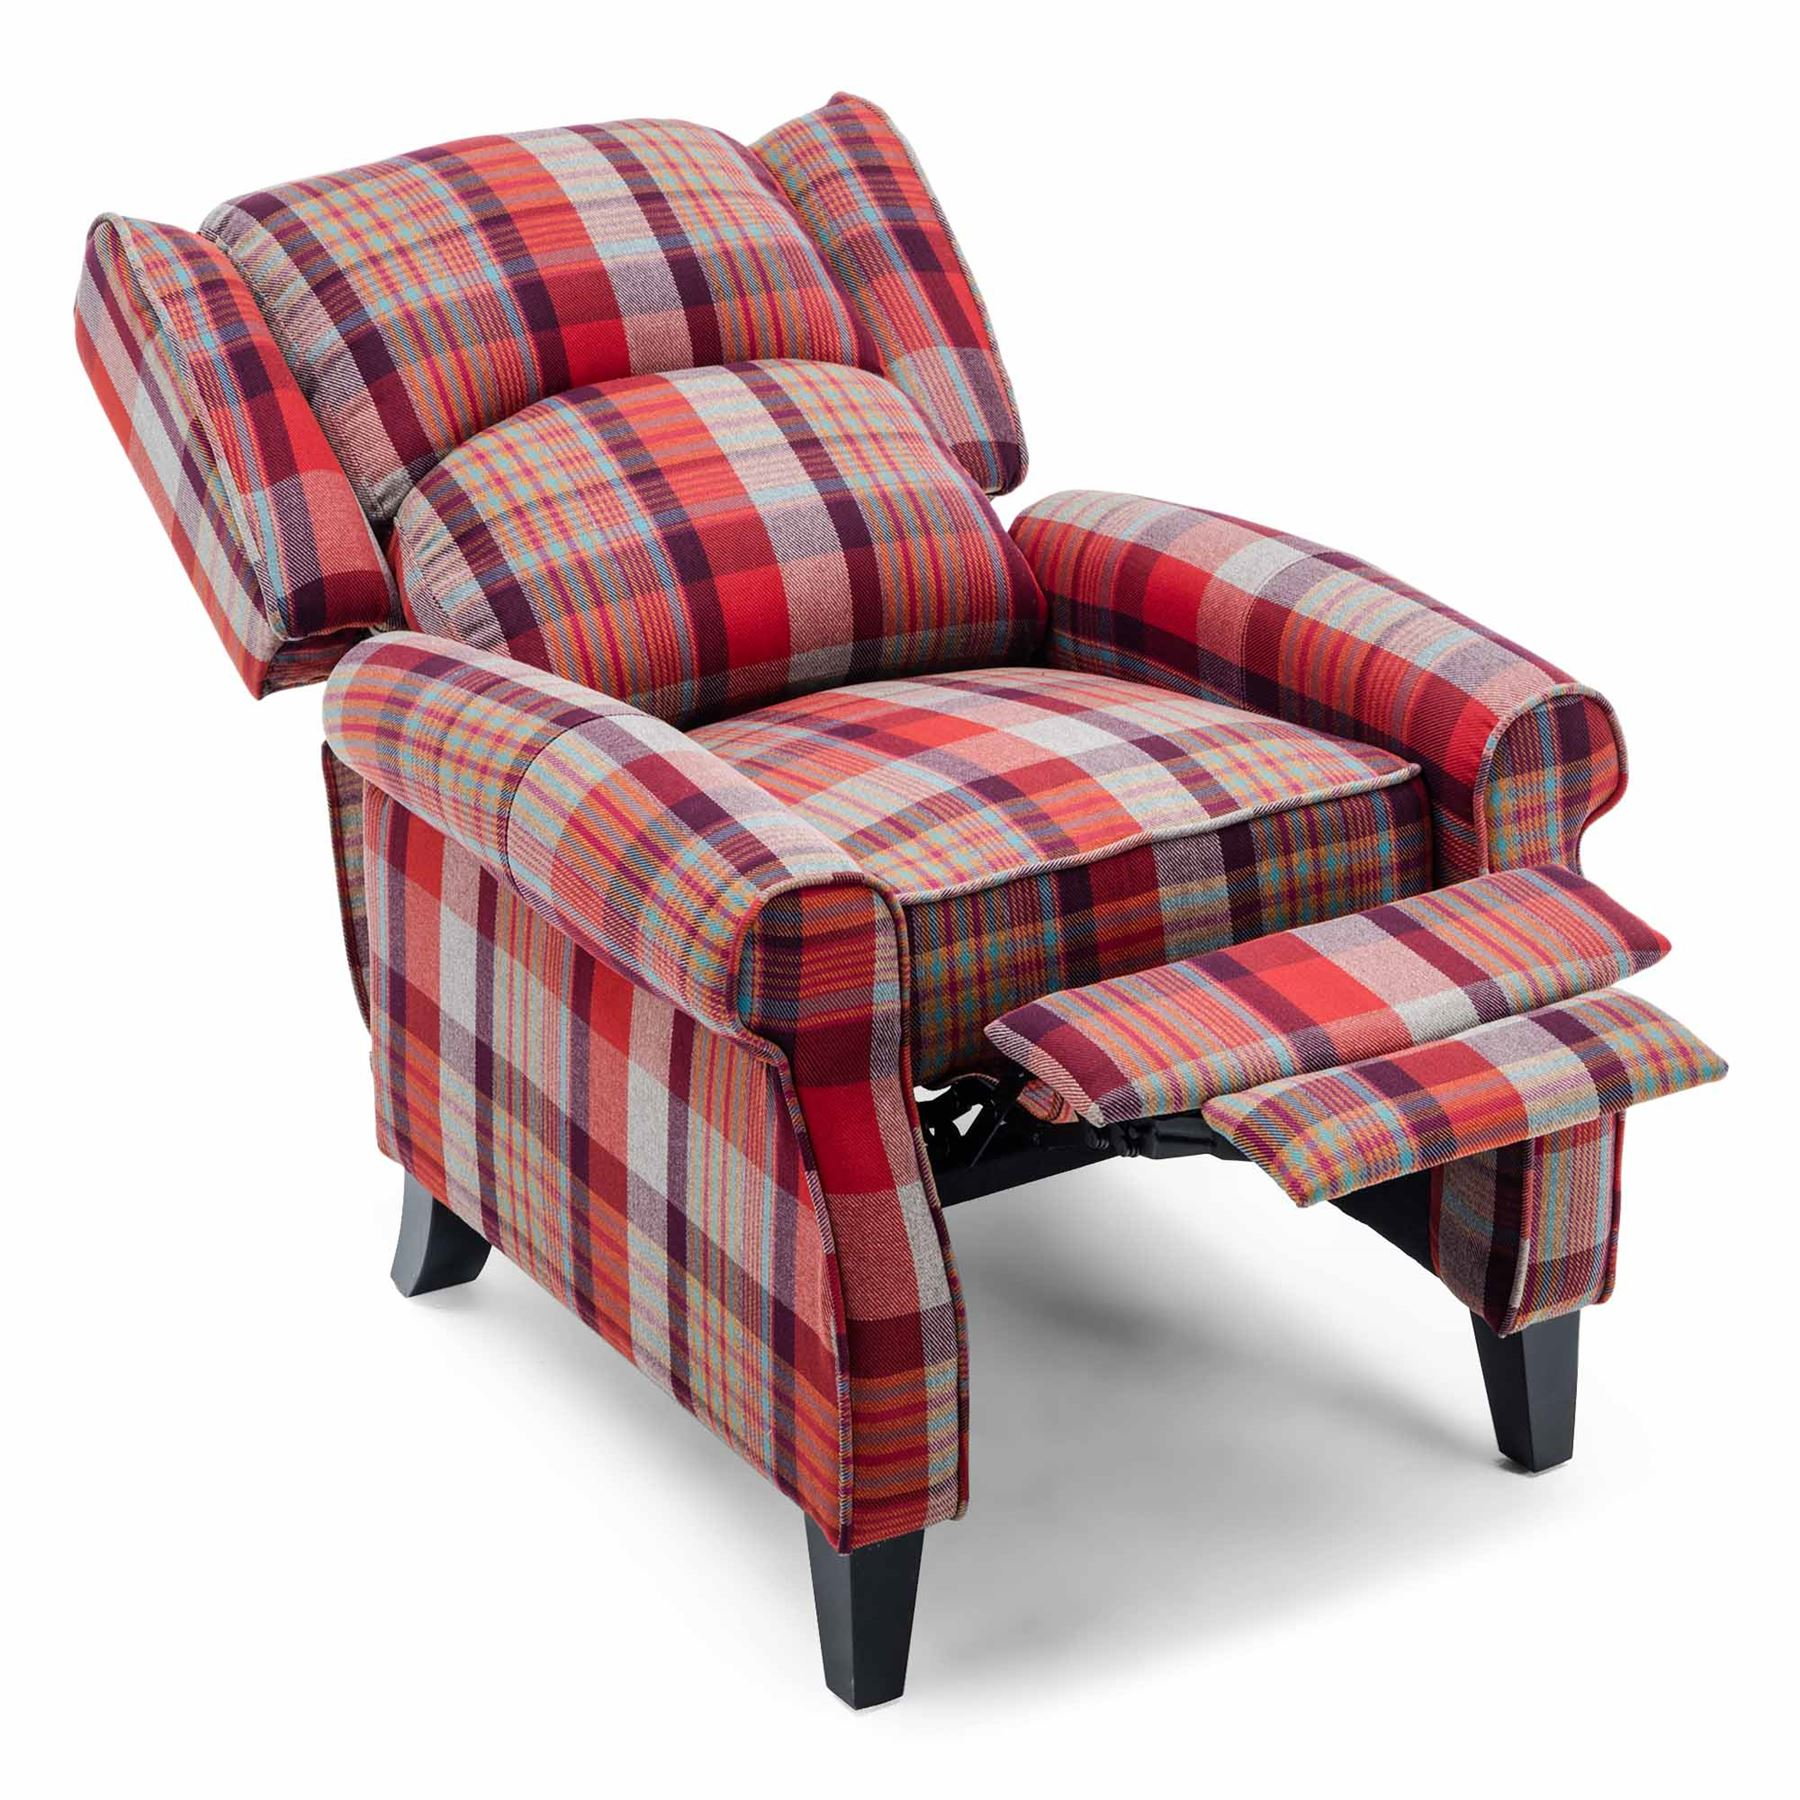 EATON-WING-BACK-FIRESIDE-CHECK-FABRIC-RECLINER-ARMCHAIR-SOFA-LOUNGE-CINEMO-CHAIR